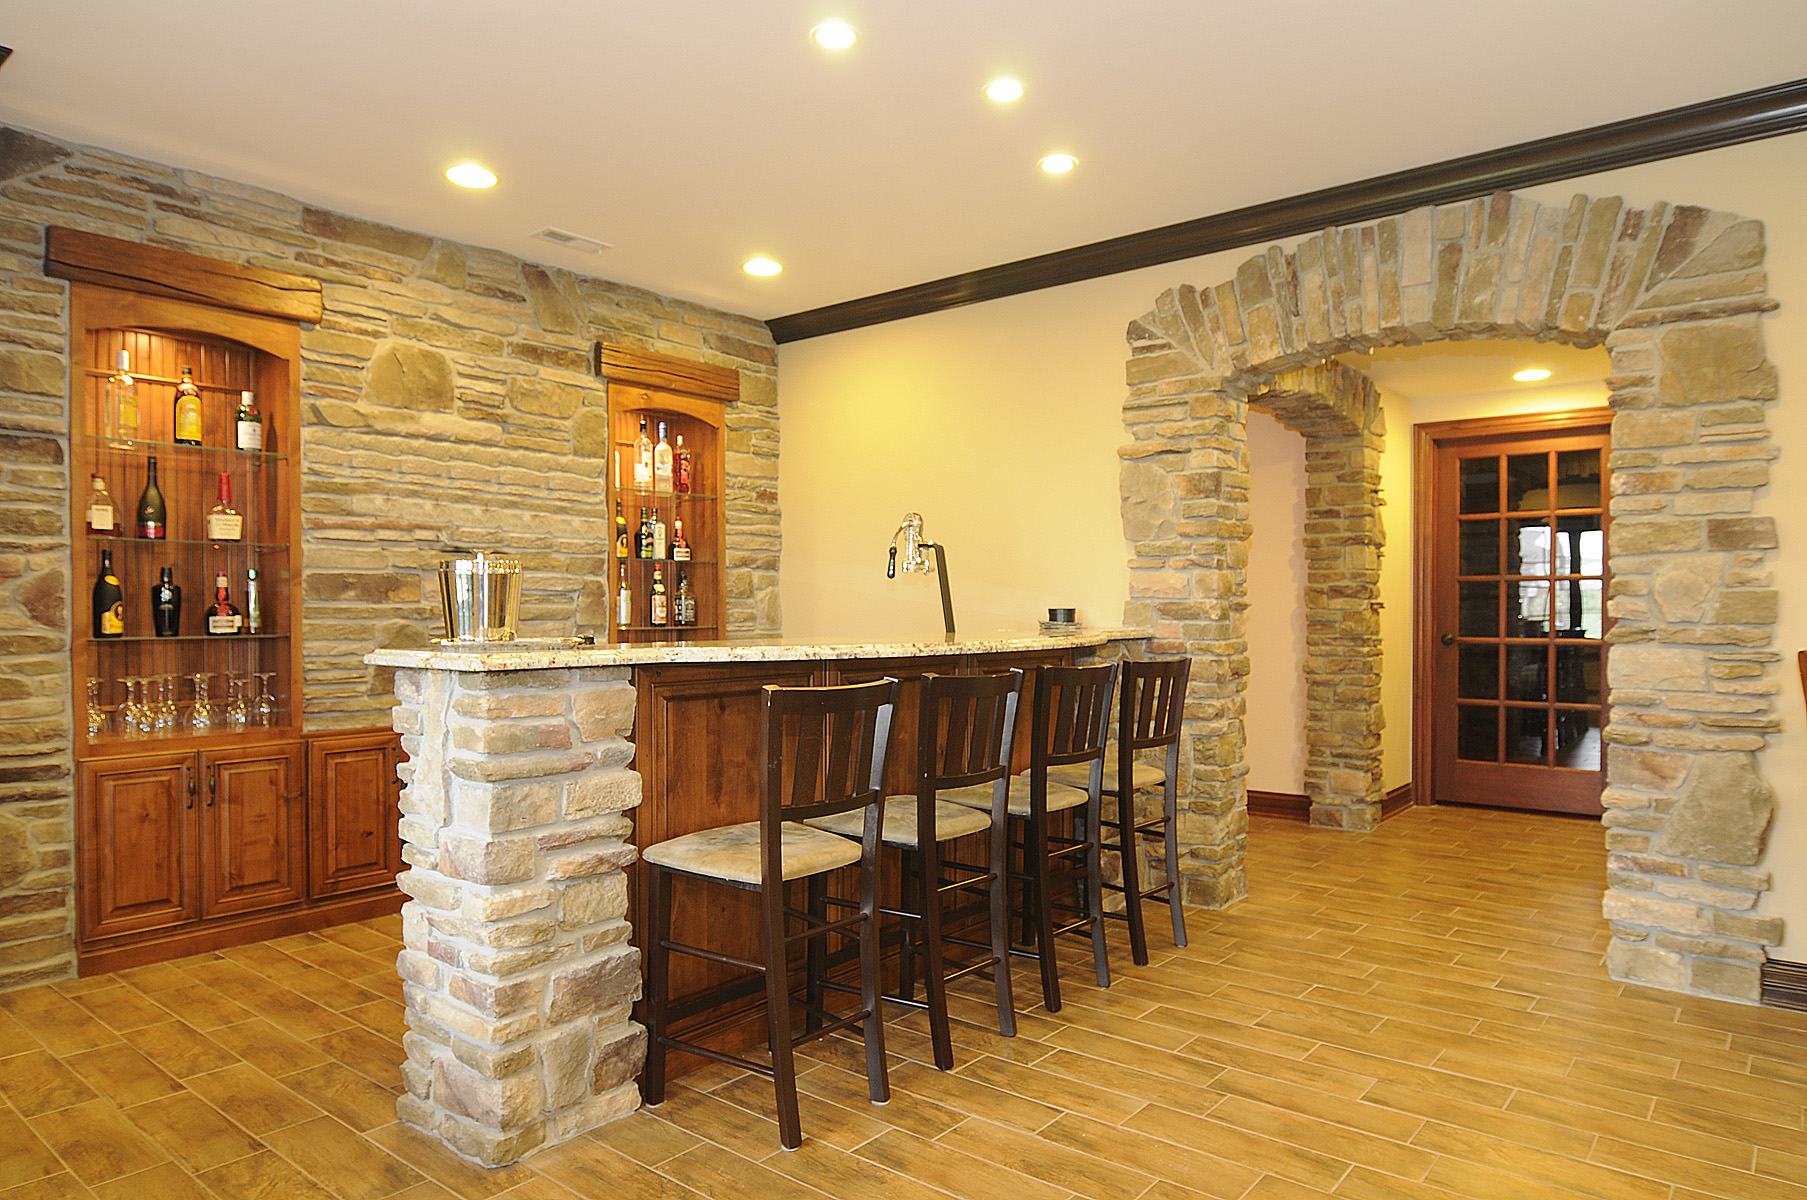 Remodeling Basement Ideas Chicago Basement Remodeling Basement Remodel Chicago